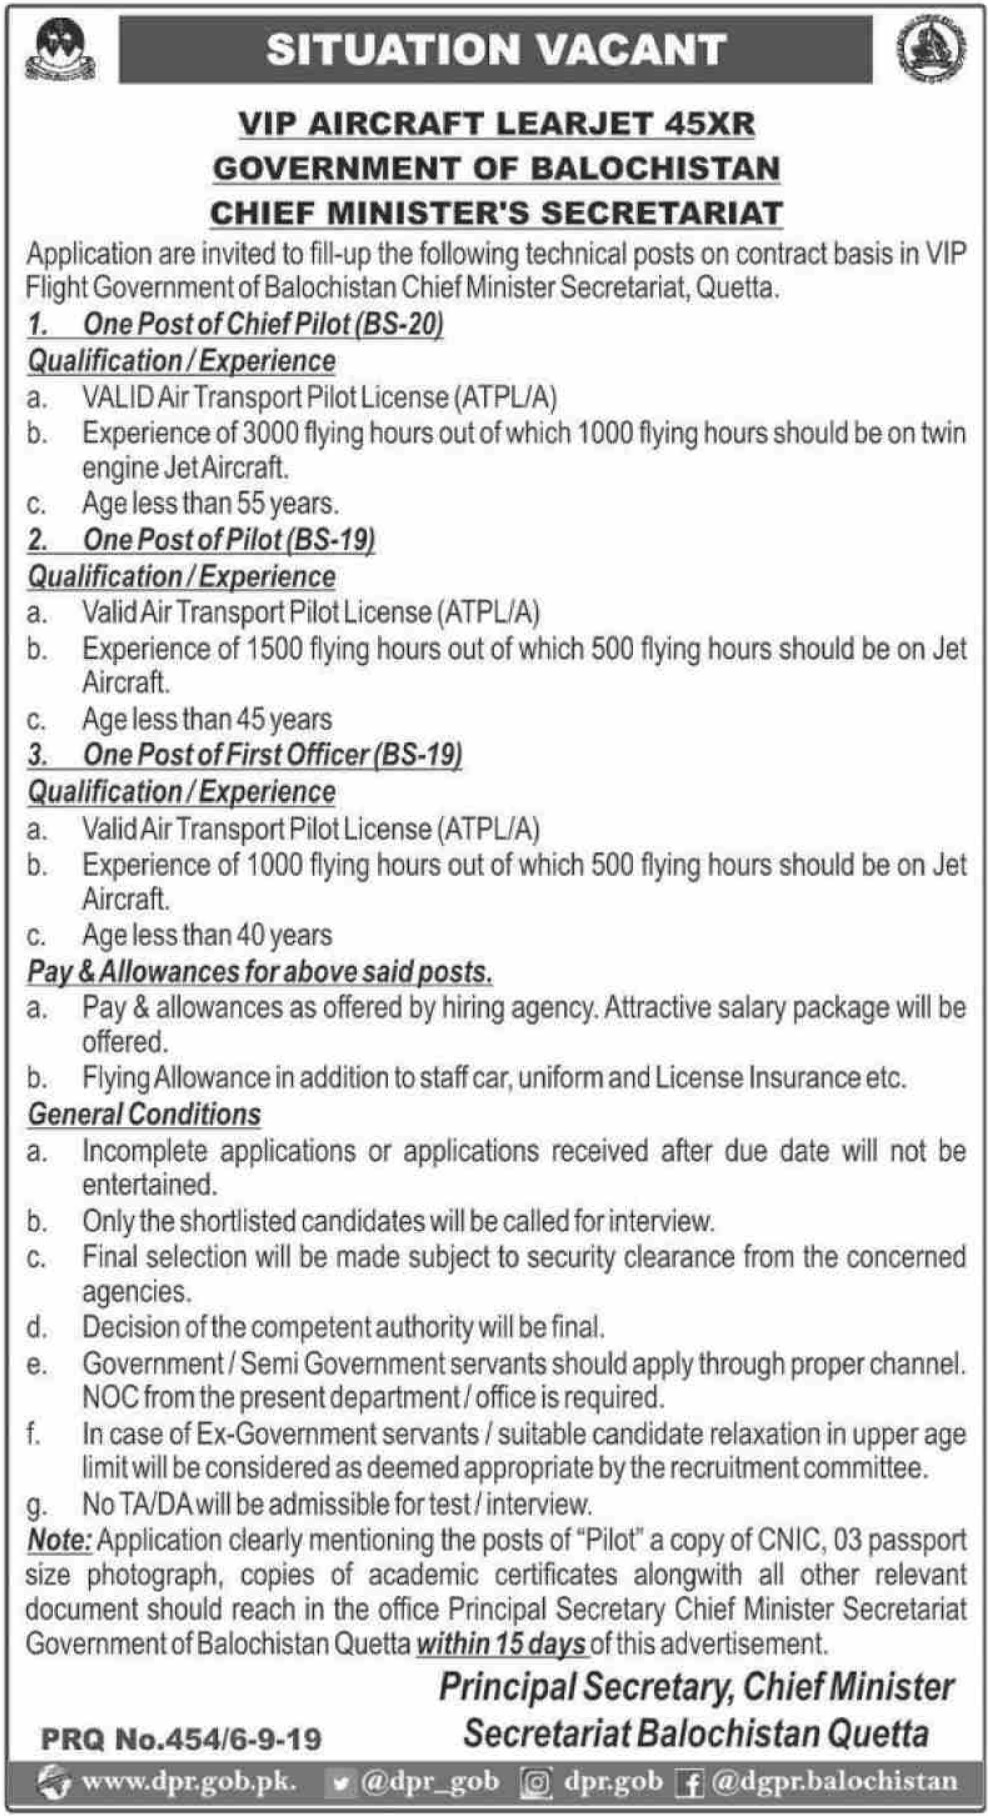 Chief Minister's Secretariat Government of Balochistan Jobs 2019